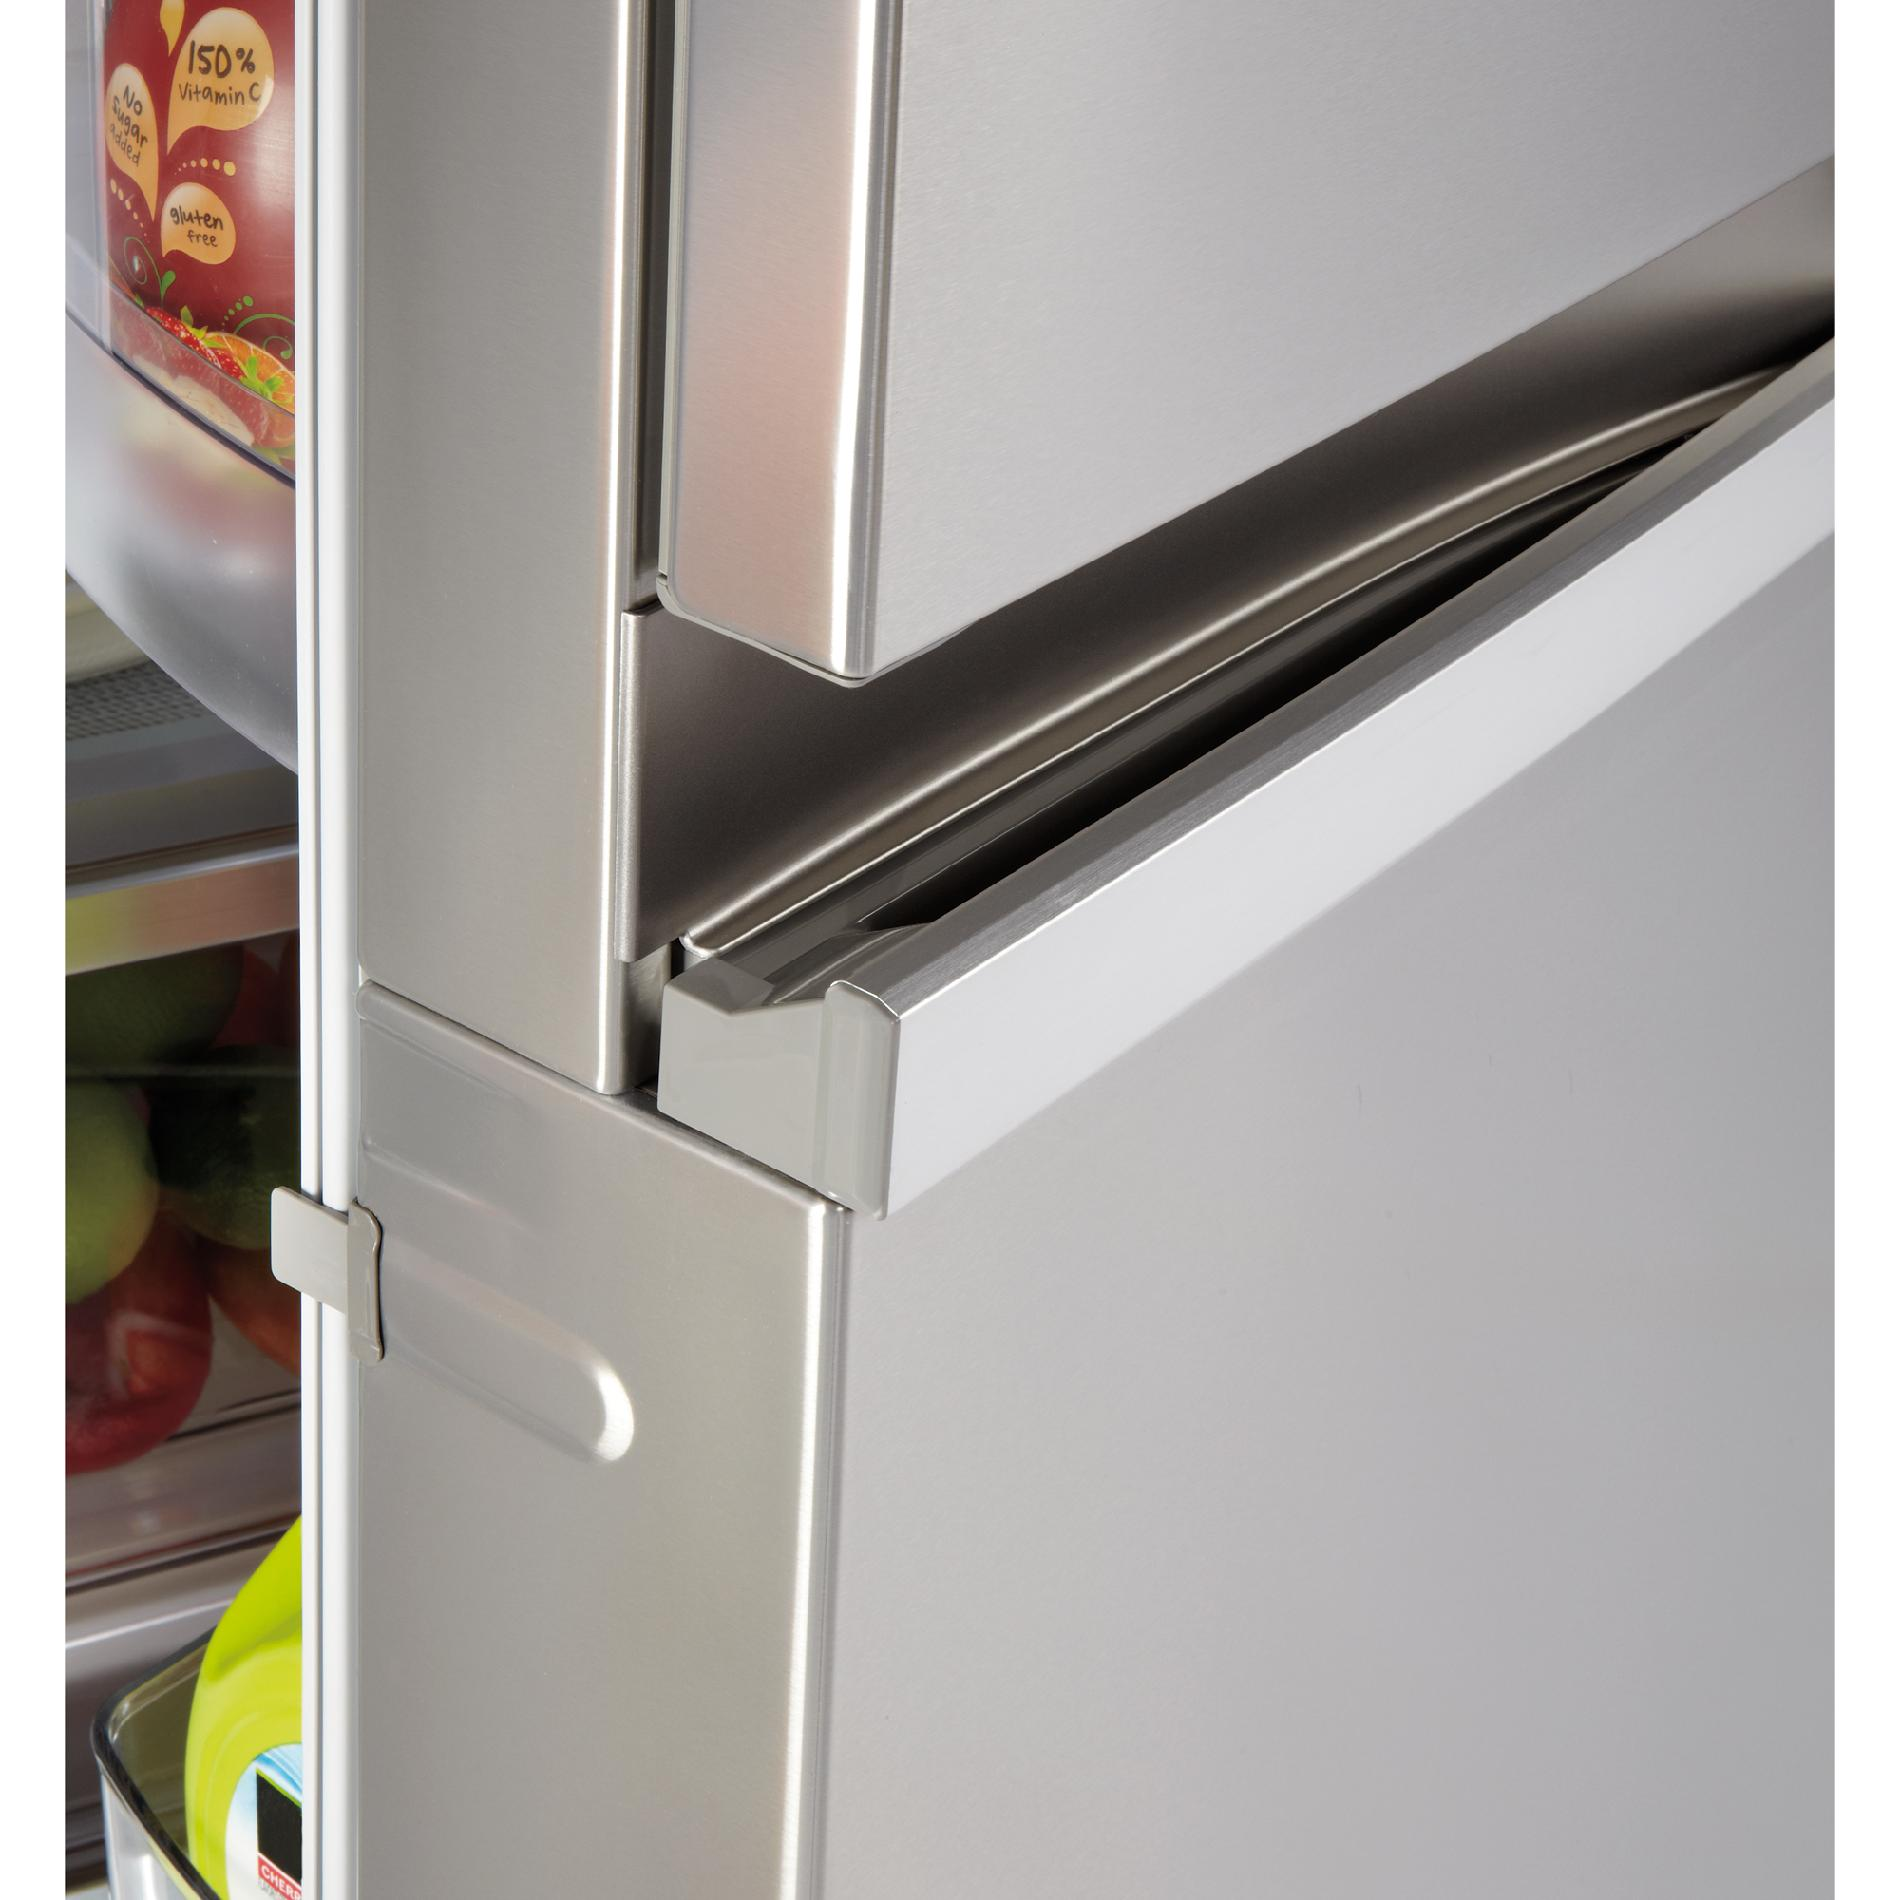 LG LSC22991ST 21.5 cu. ft. Counter-Depth Lar Capacity SxS Refrigerator with Door-in-Door